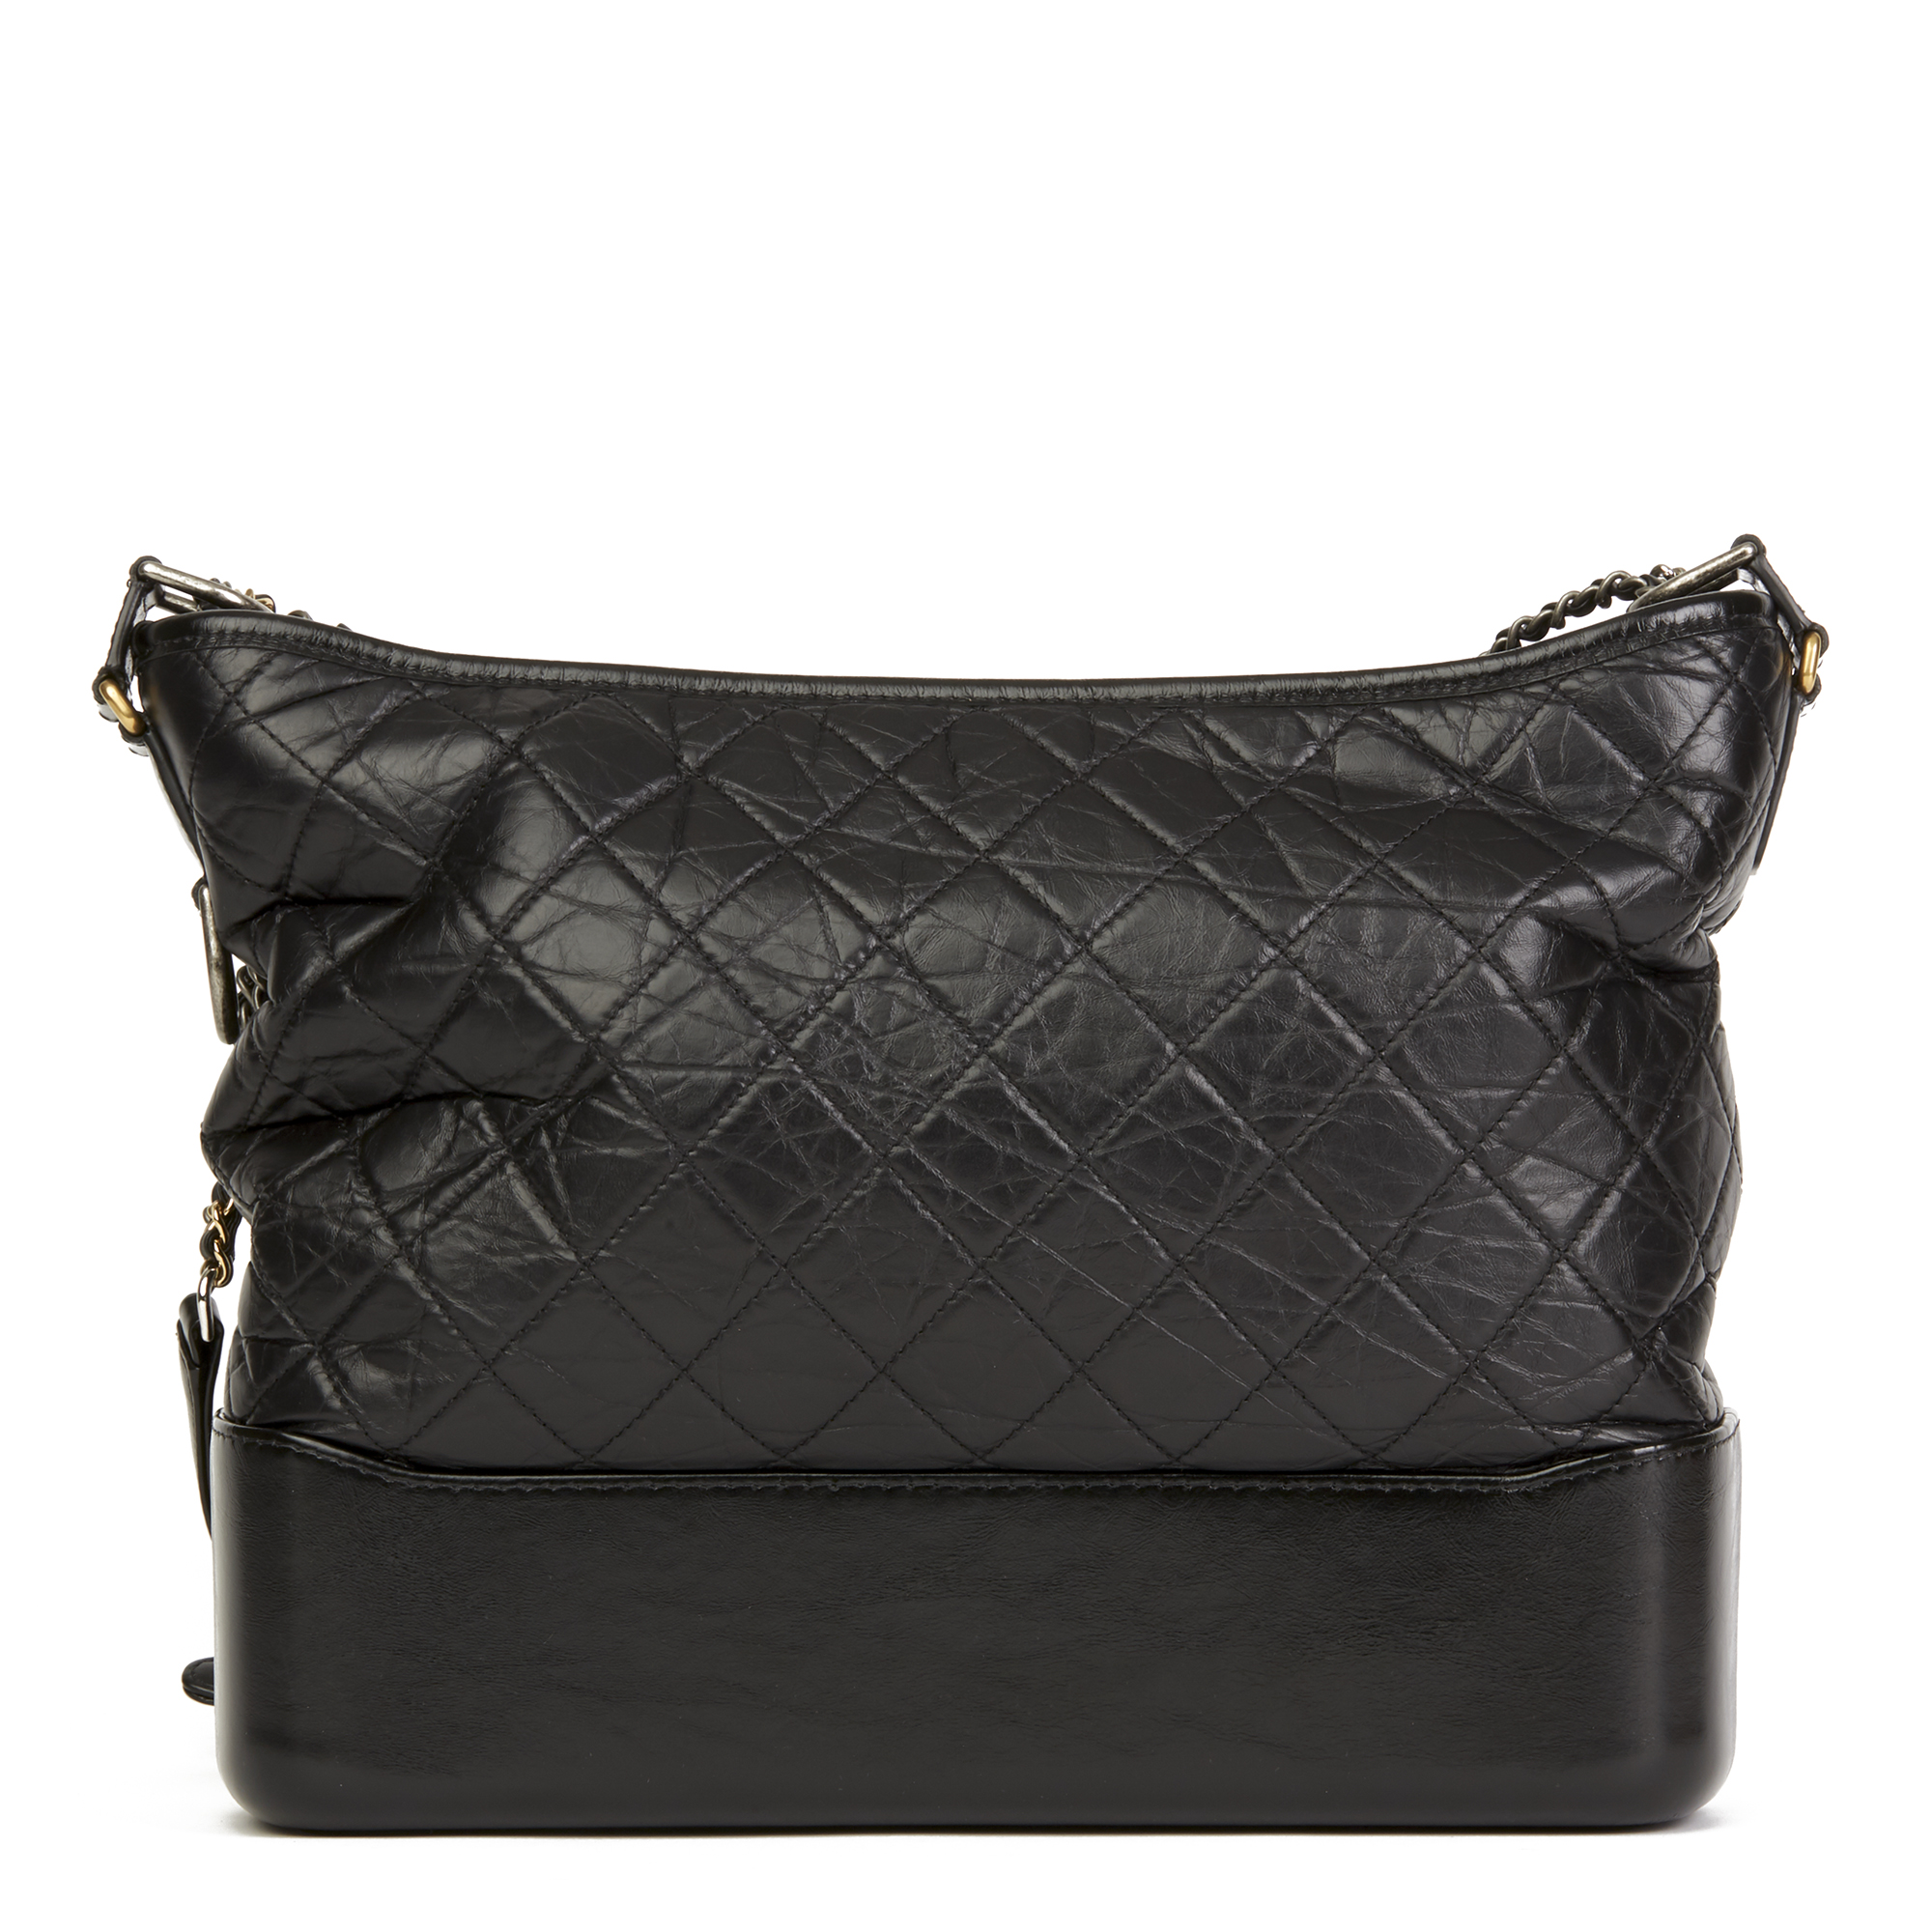 7a2c7d4acc01d4 Details about CHANEL BLACK QUILTED AGED CALFSKIN LEATHER LARGE GABRIELLE  HOBO BAG HB2800